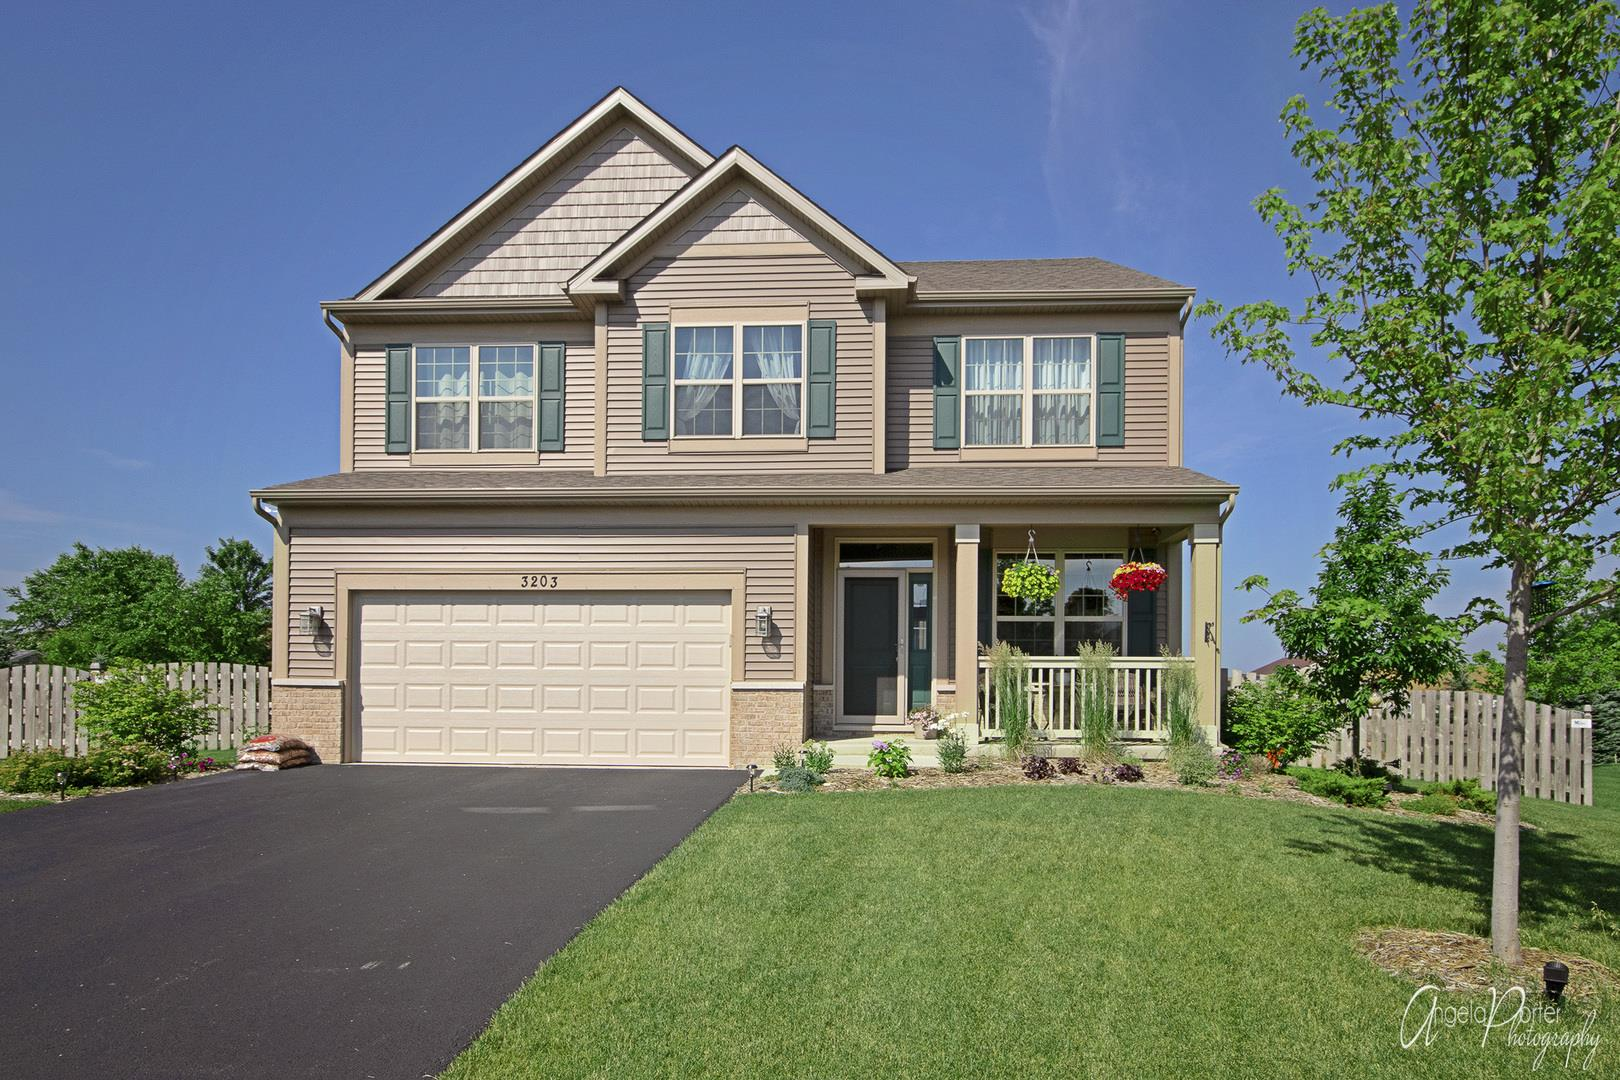 3203 Christopher Court, Johnsburg, IL 60051 - #: 10652912